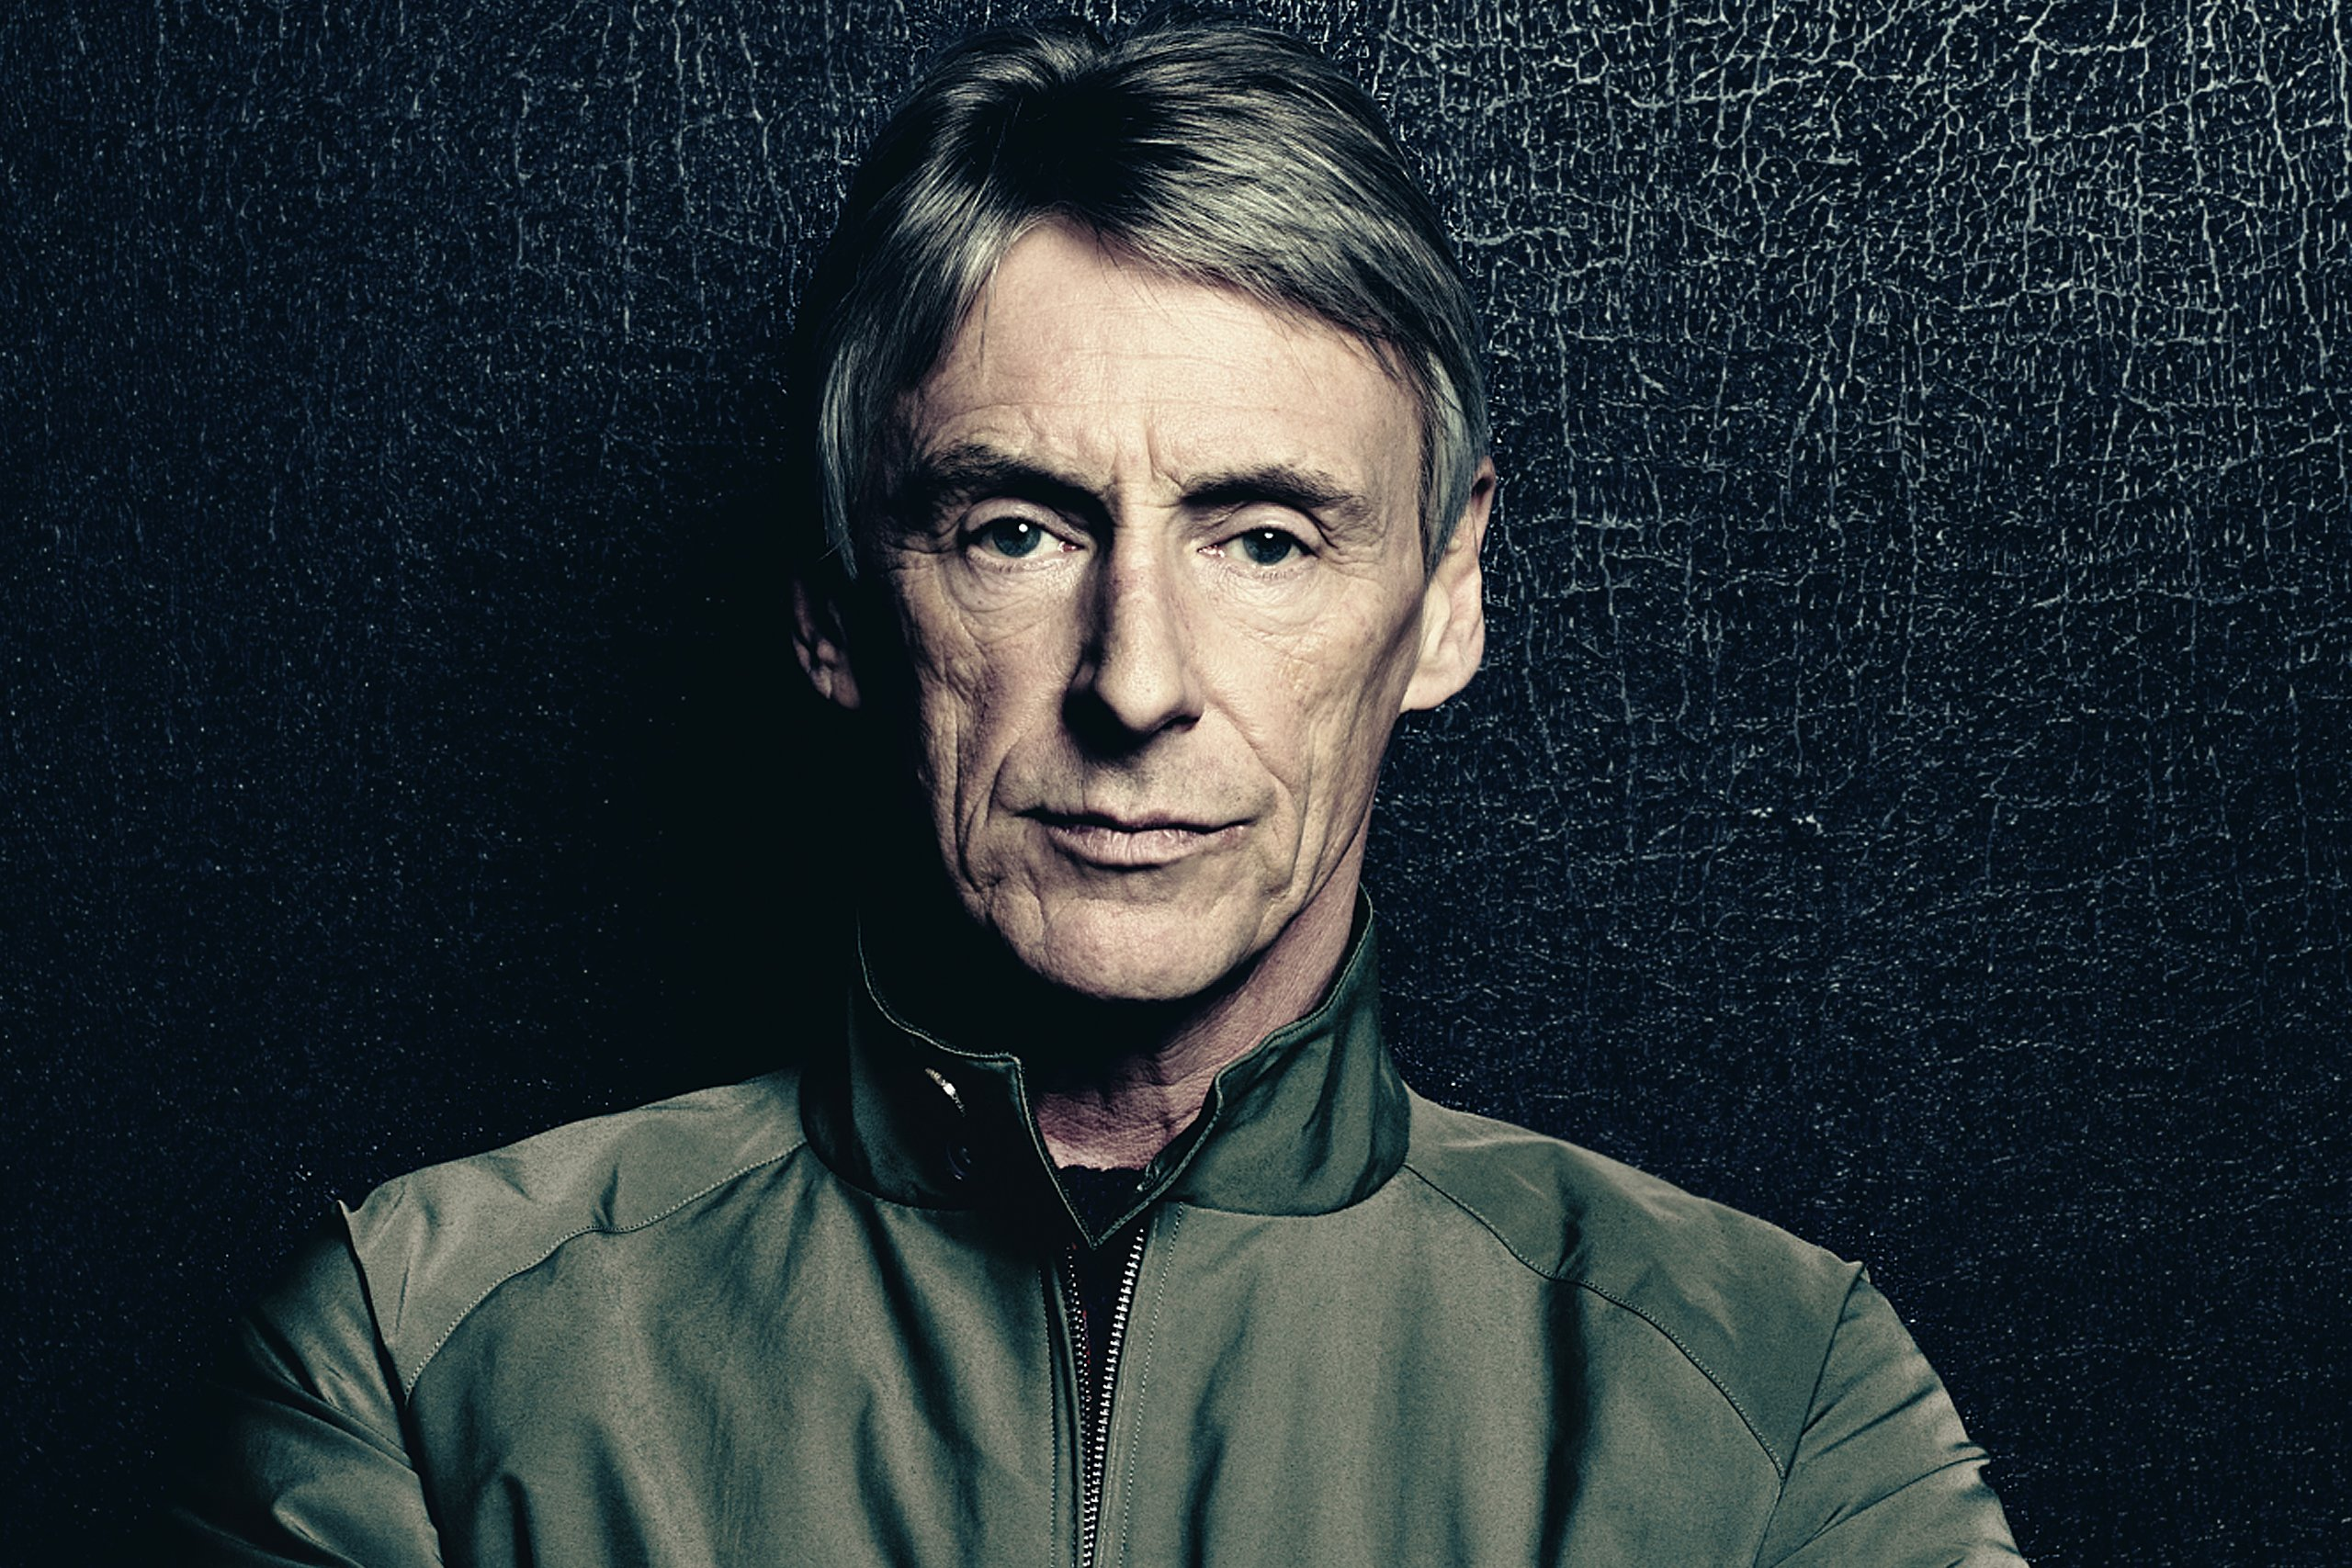 paul-weller-tease_alq4fa